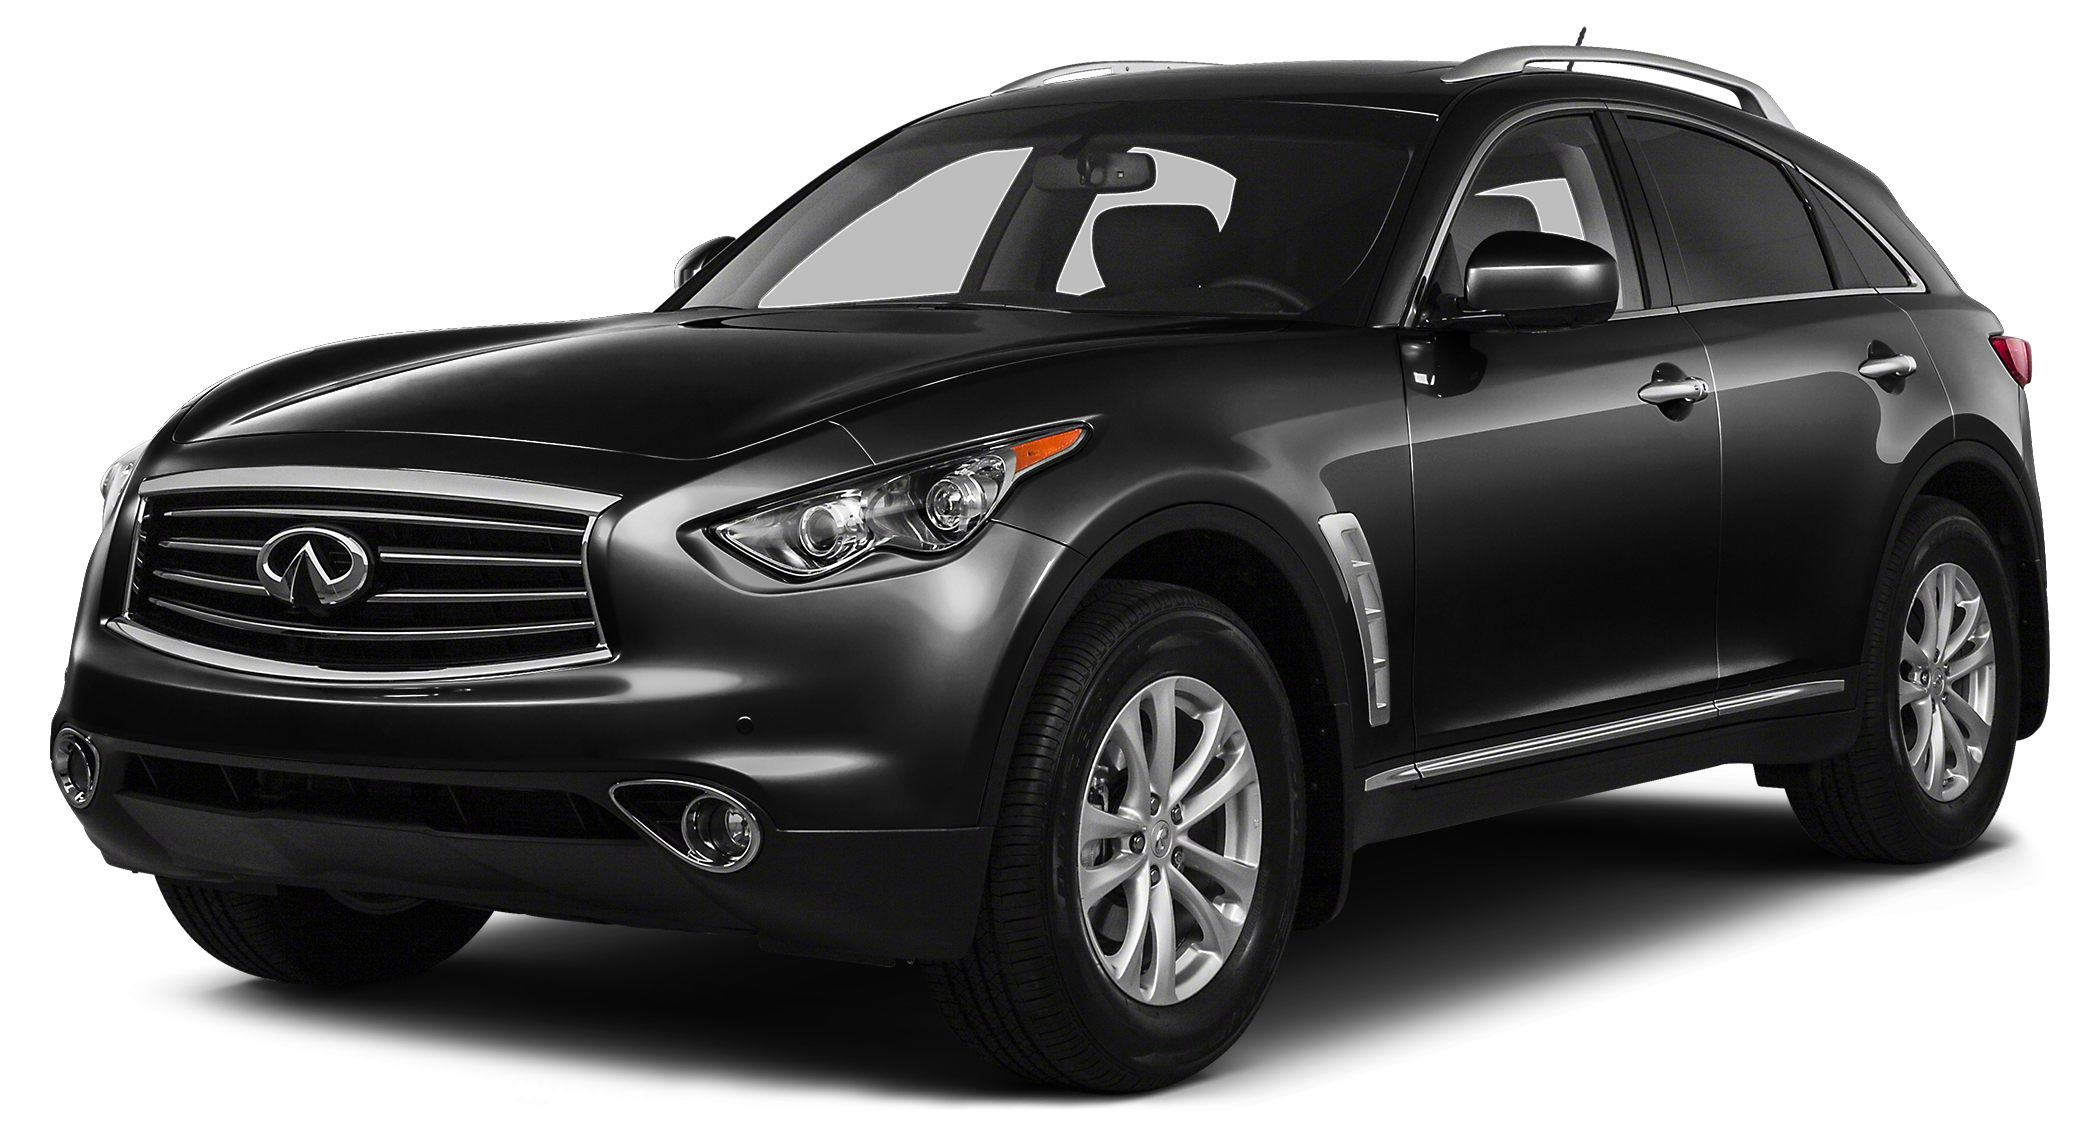 2014 INFINITI QX70 Base NAVIGATION POWER MOONROOF POWER LIFTGATE ONLY 50K MILES FLORIDA VEHICL